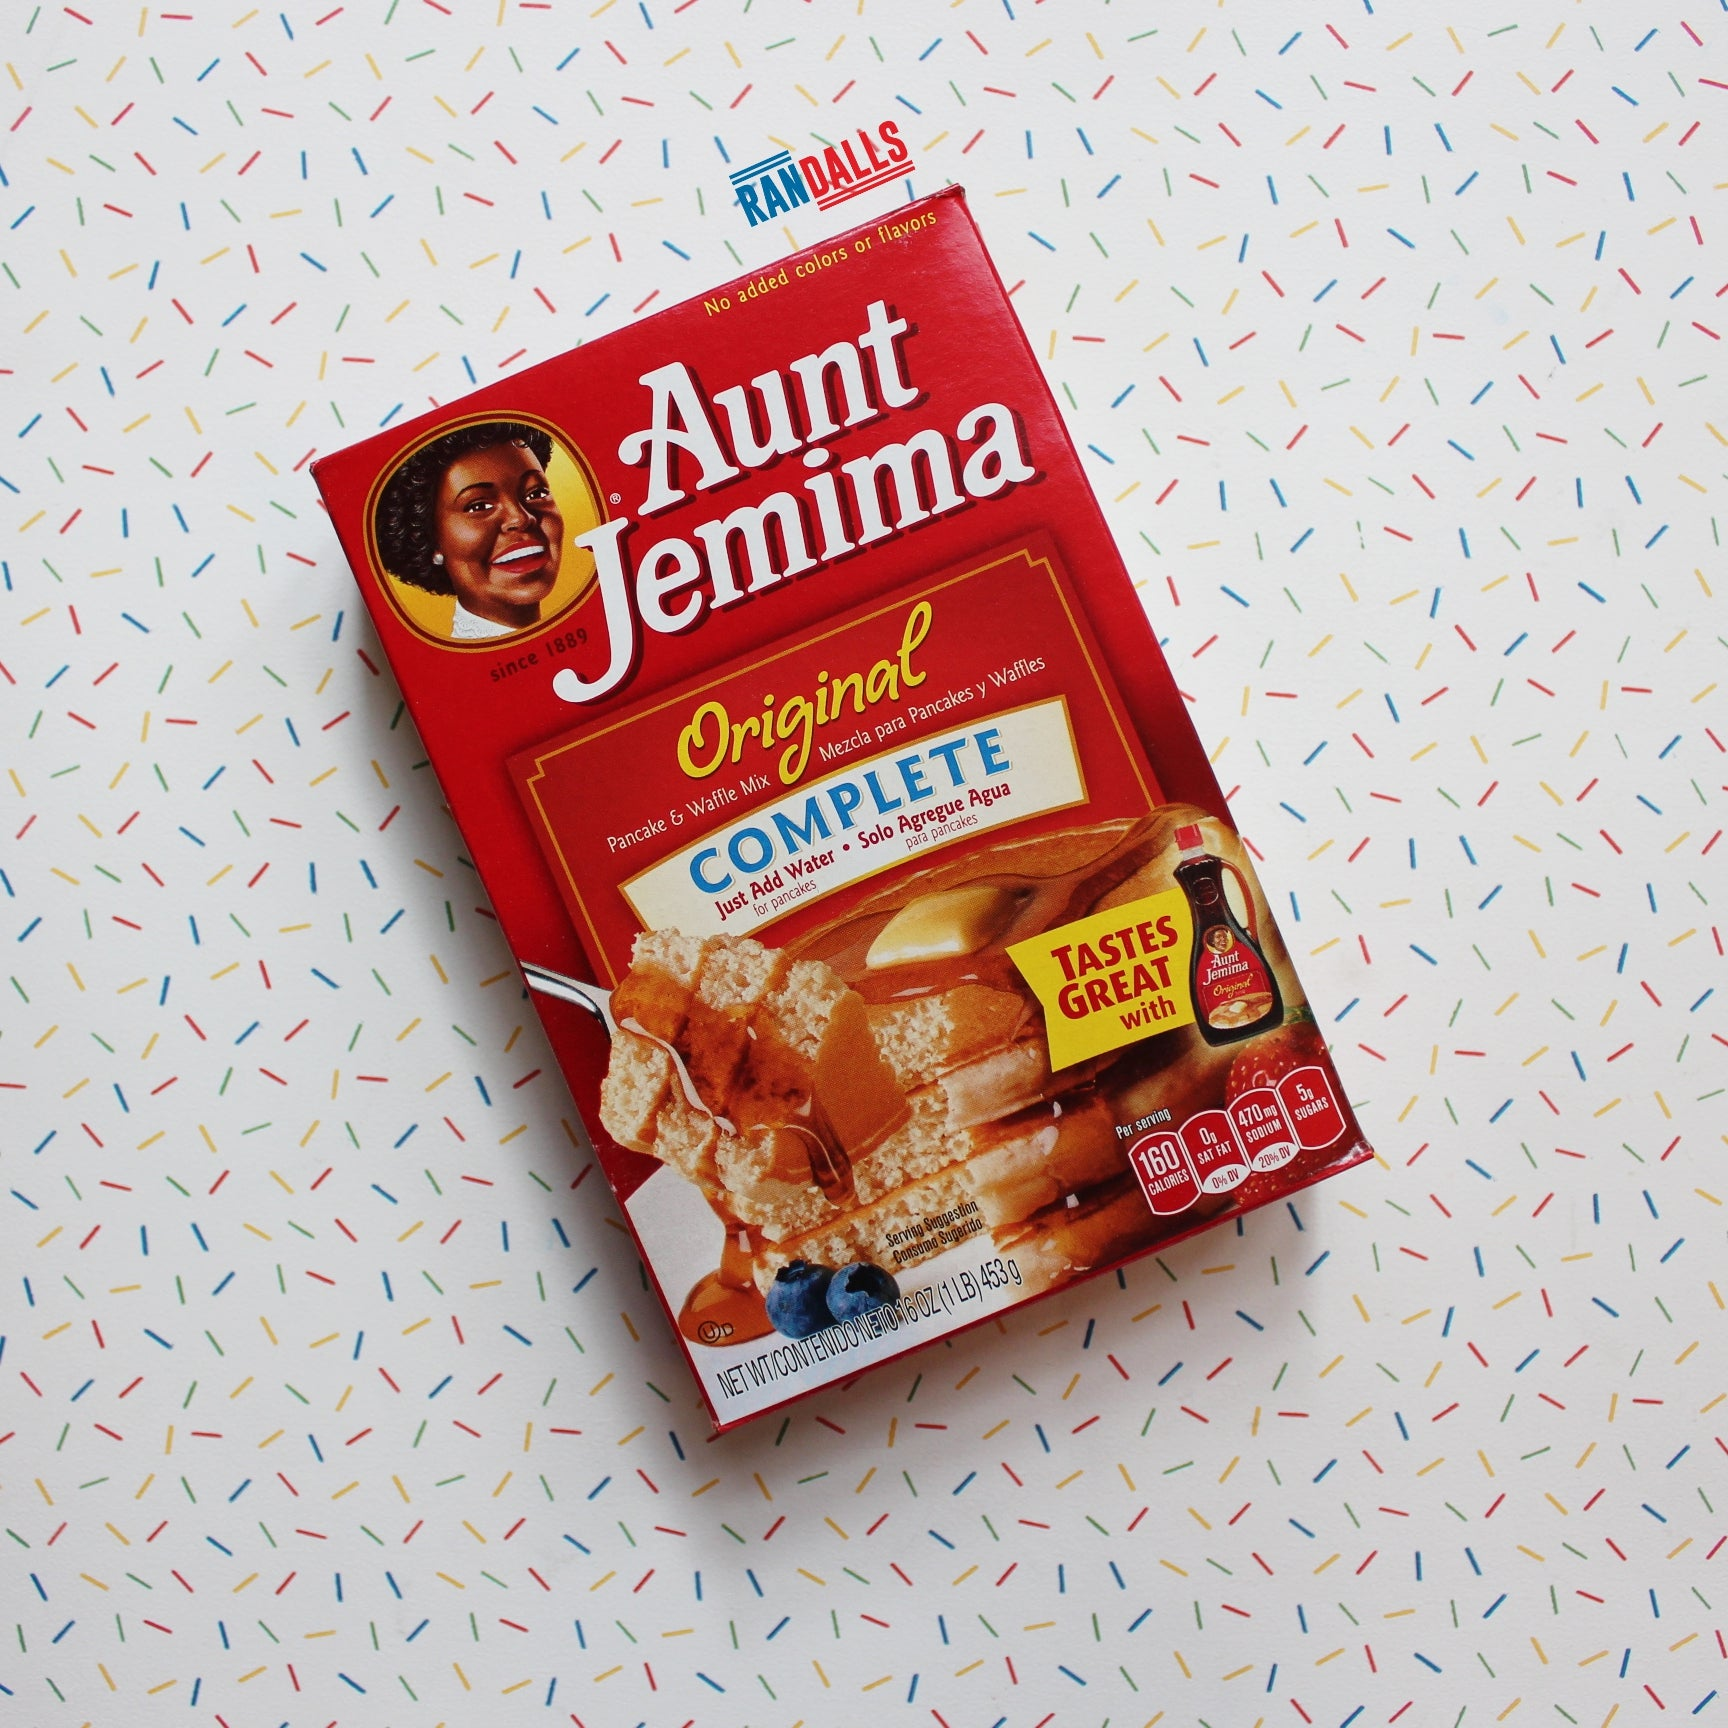 AUNT JEMIMA ORIGINAL PANCAKE MIX BOX